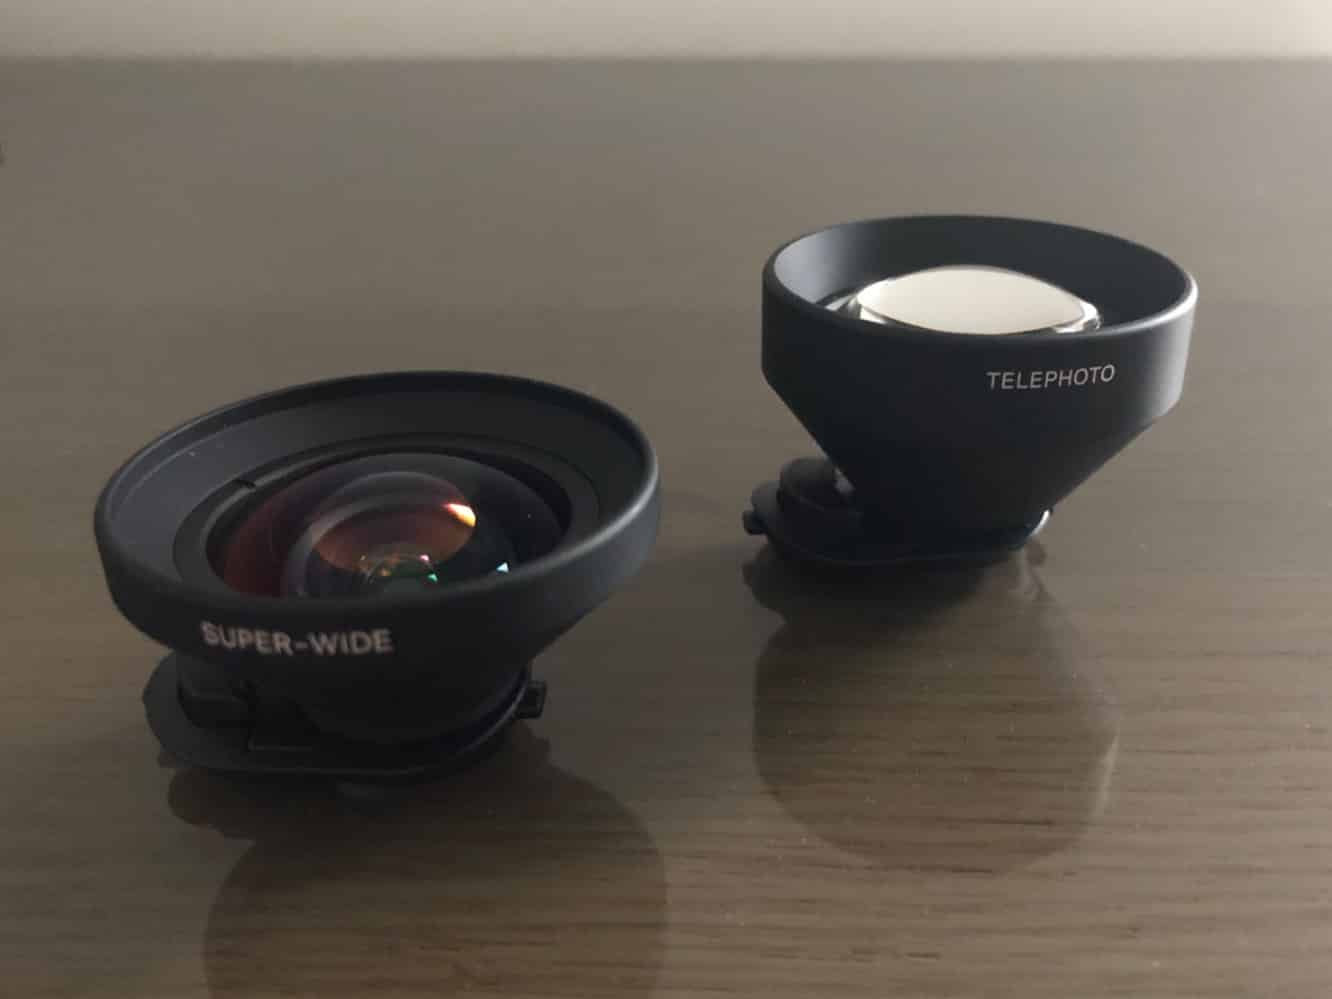 Review: Olloclip Super-Wide Pro and Telephoto Pro Lenses